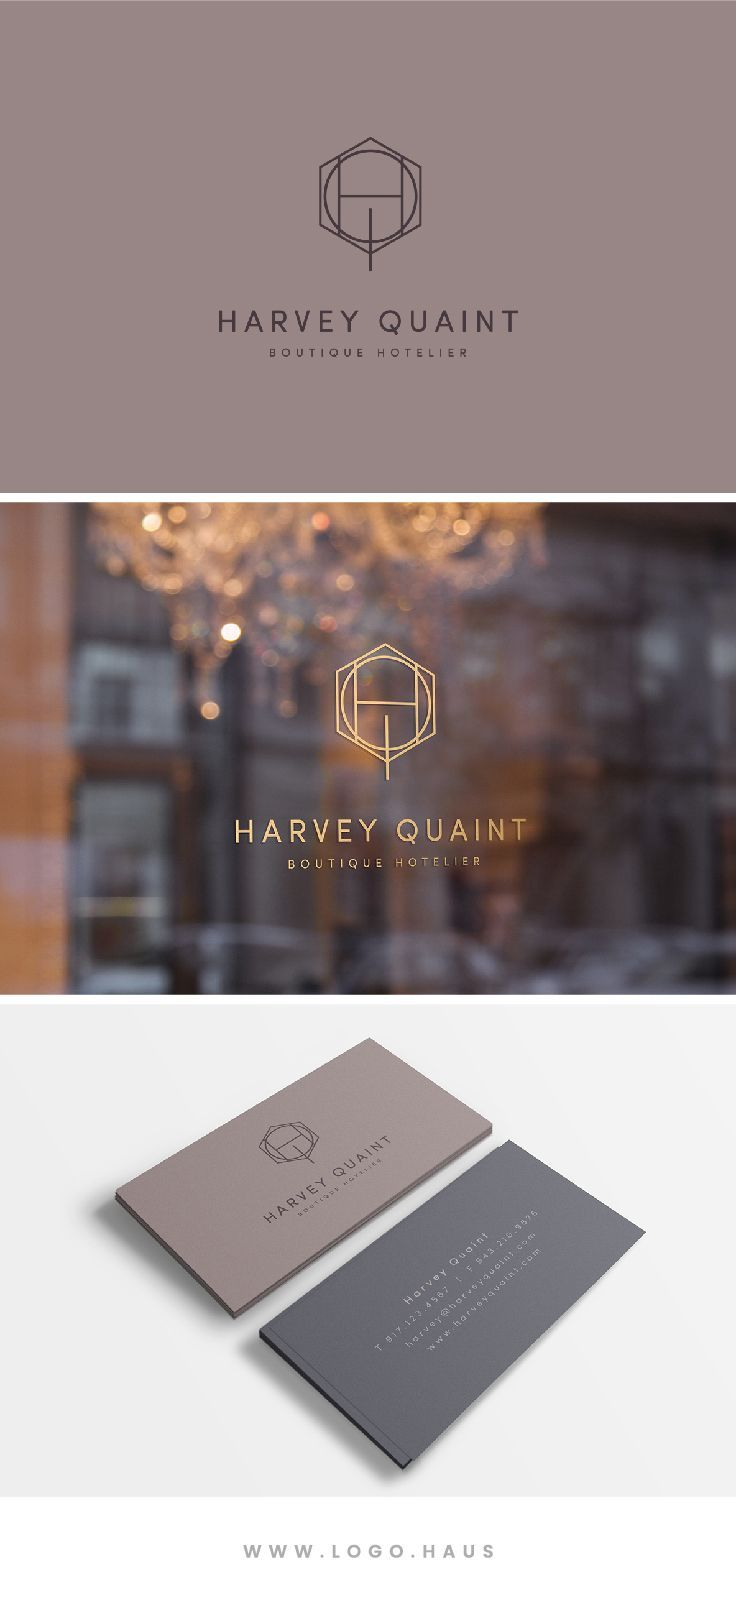 The Harvey Quaint logo design is an elegant geowire monogram combined with modern sans serif type. This logo design kit would work well for an individual, boutique, specialty goods, restaurant or hospitality brand.